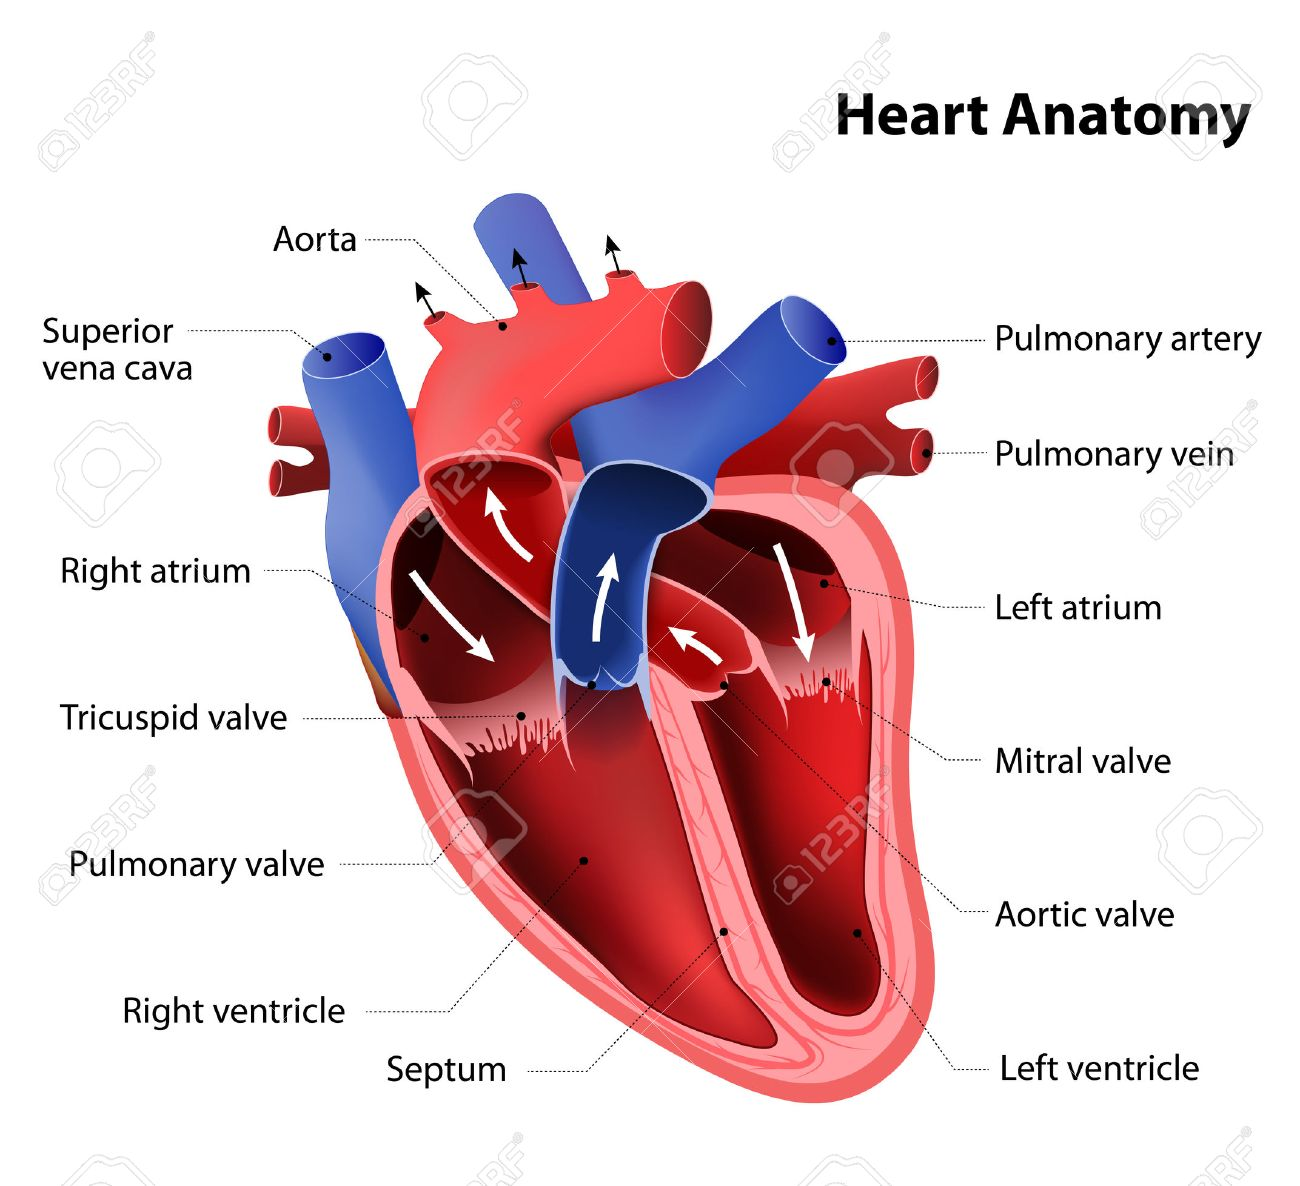 Heart Anatomy Part Of The Human Heart Royalty Free Cliparts